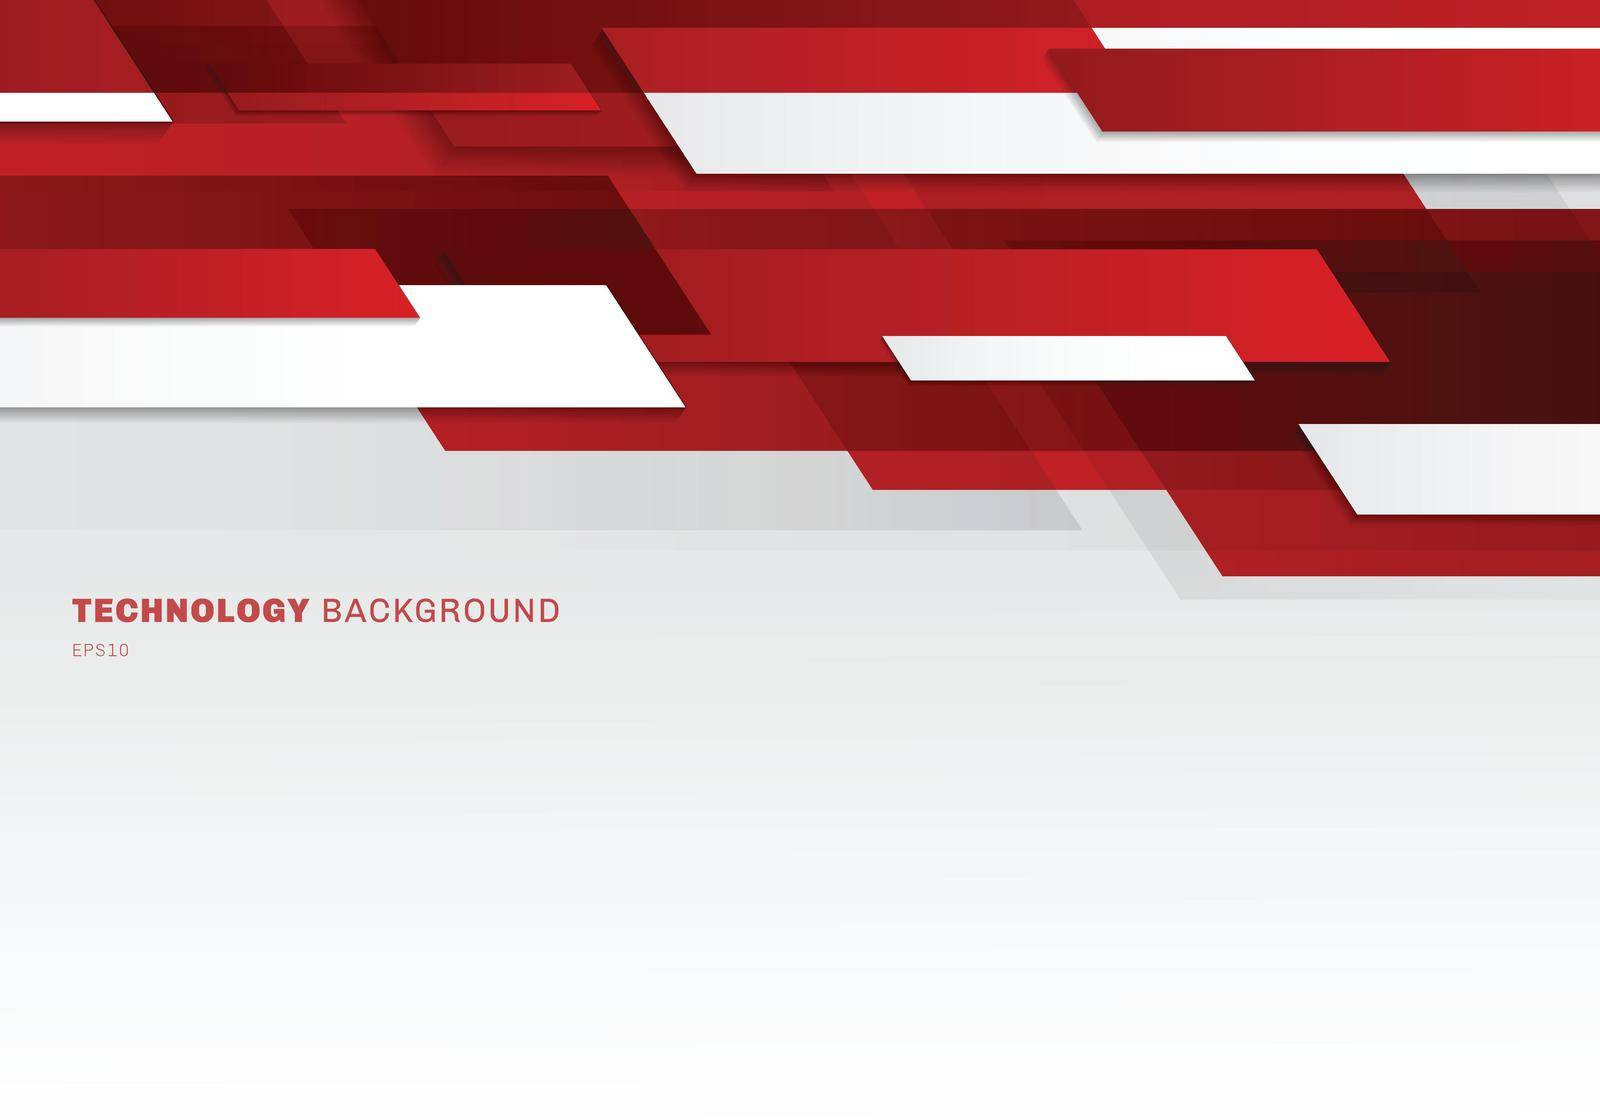 Abstract header red and white shiny geometric shapes overlapping moving technology futuristic style presentation background with copy space. Vector illustration